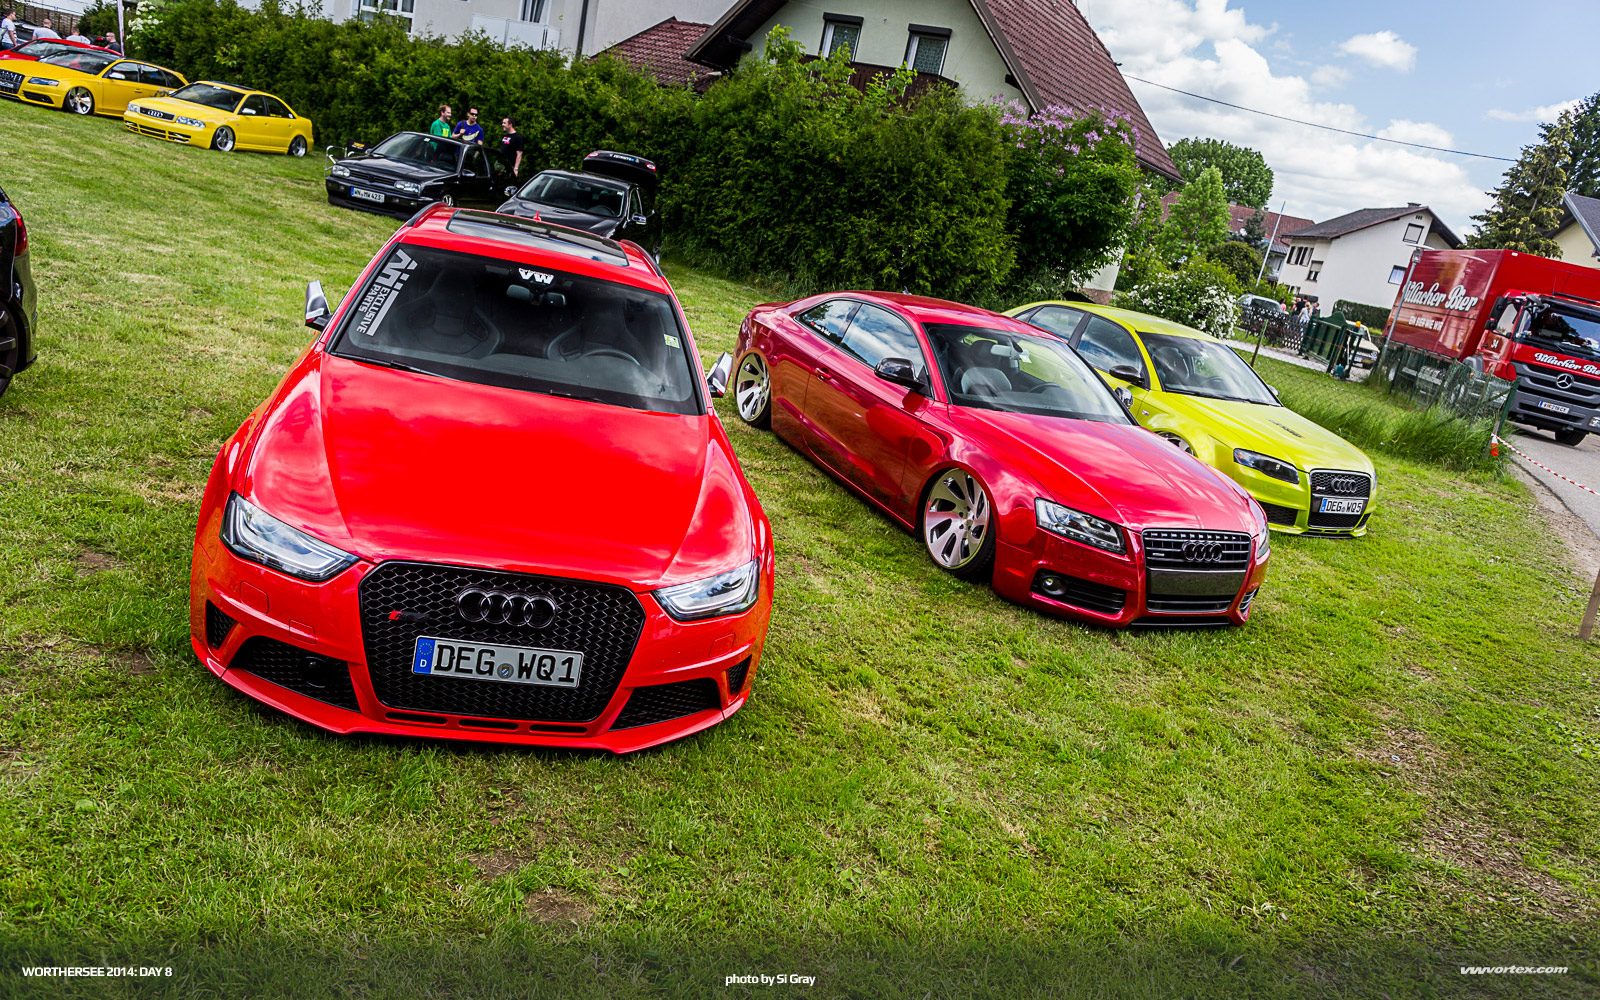 2014-Worthersee-Day-8-Si-Gray-1089